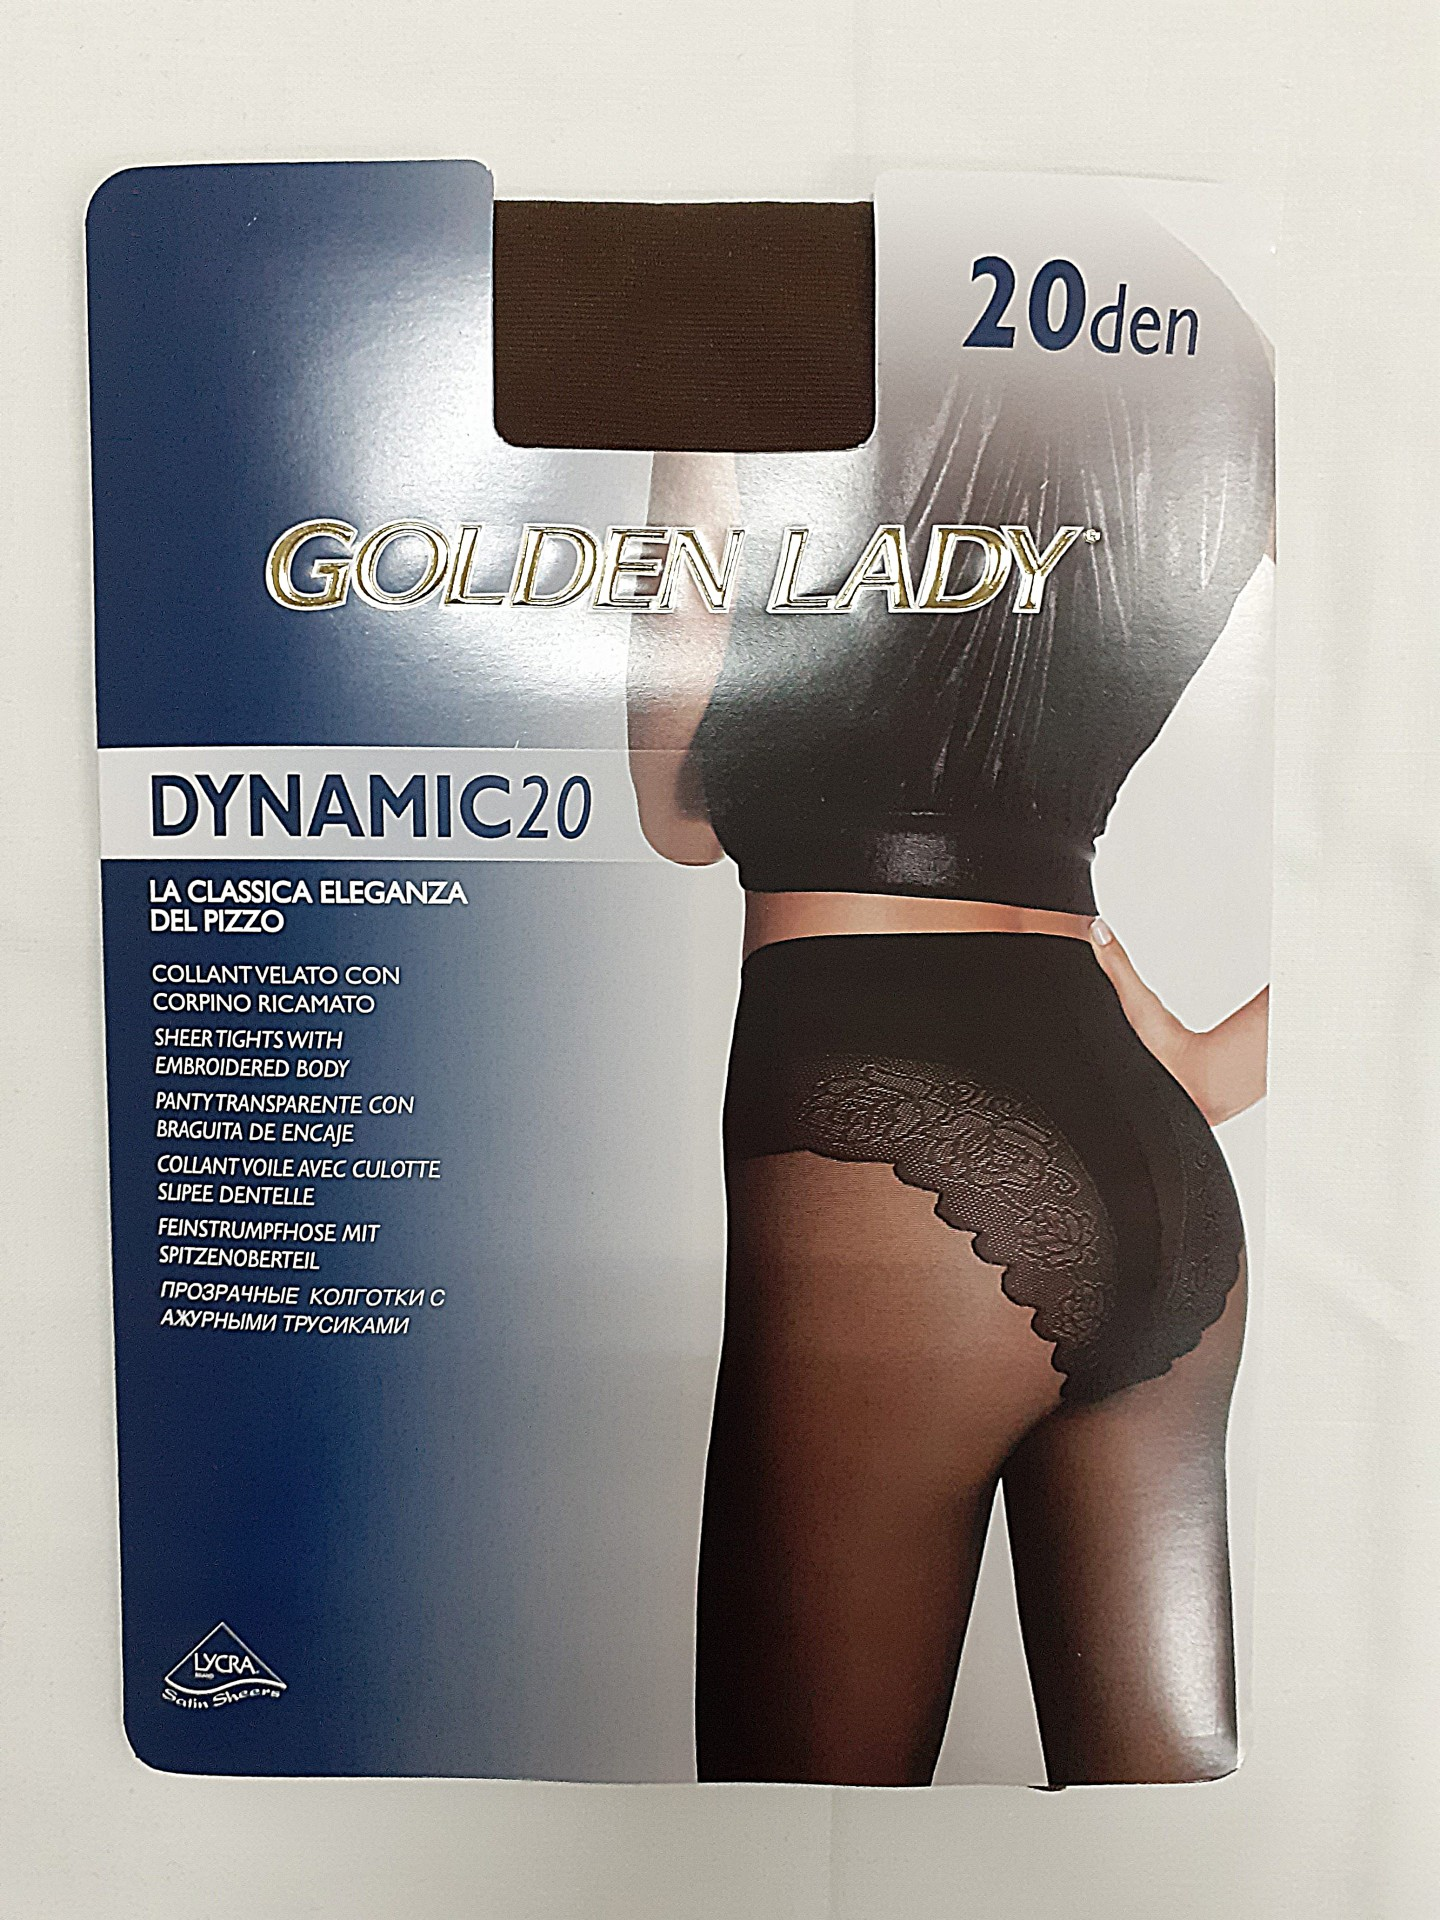 Collant Dynamic 20 Golden Lady